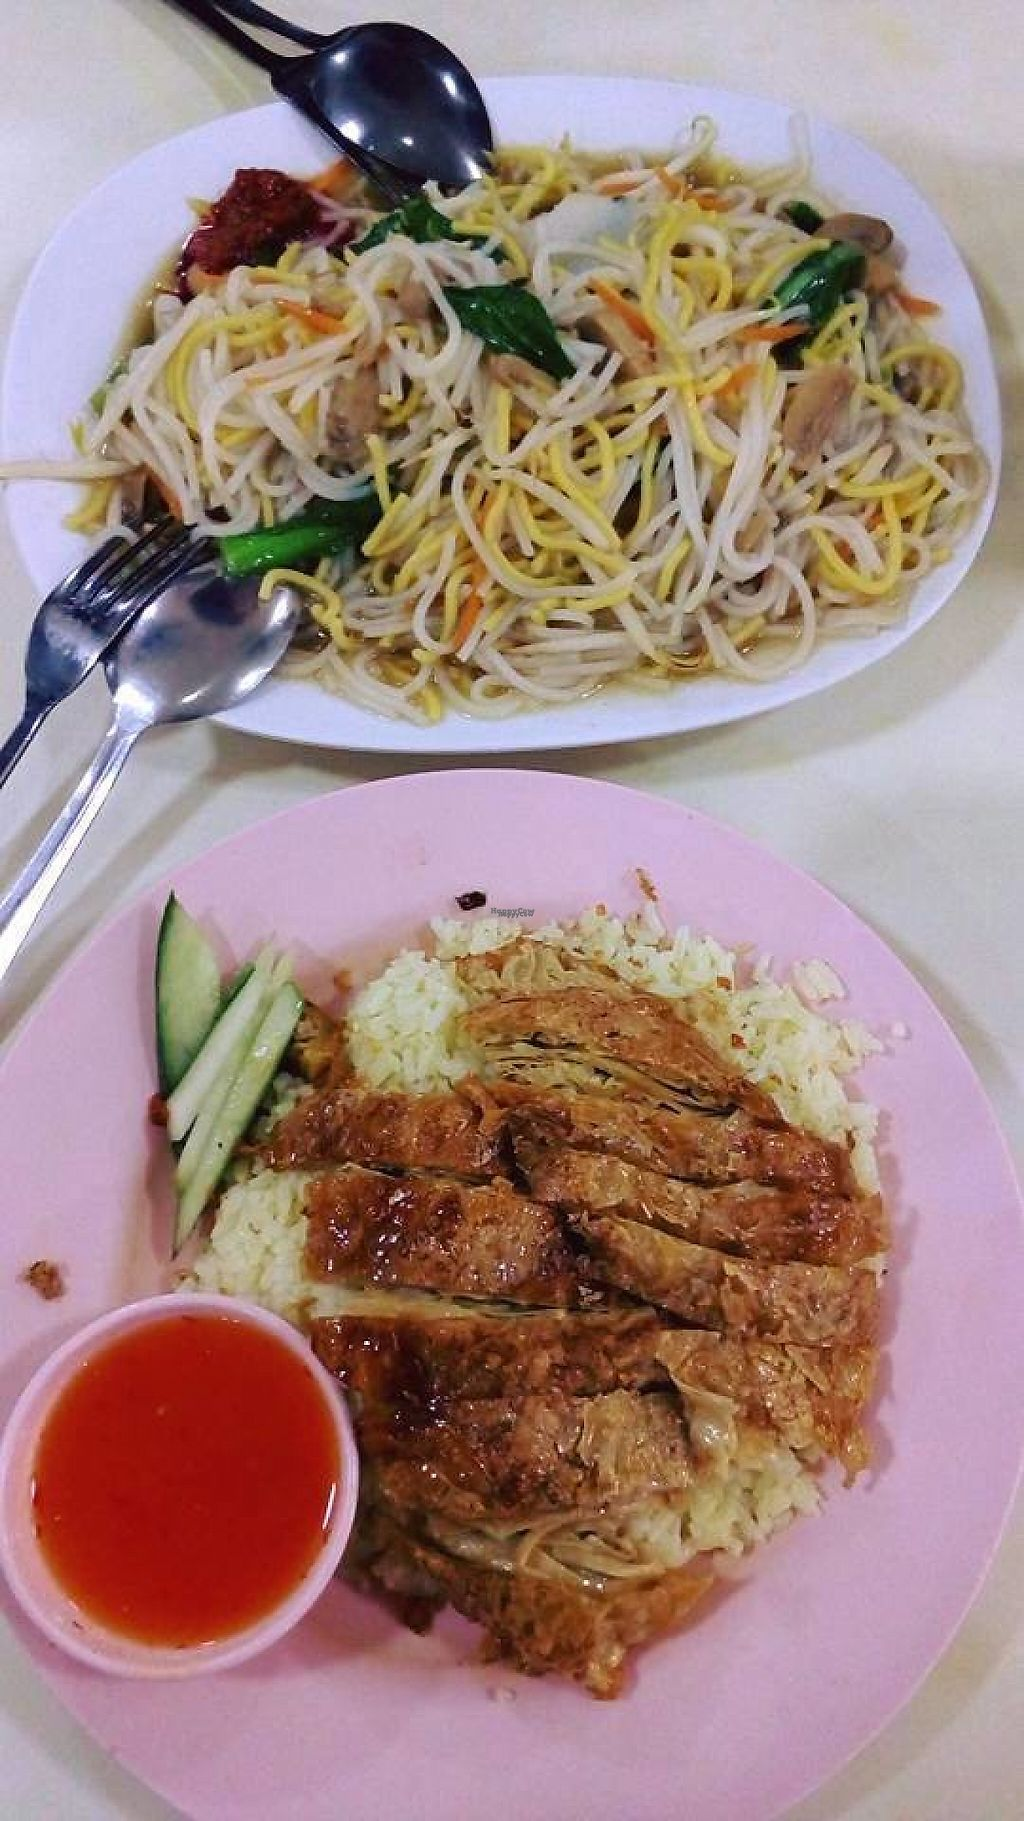 """Photo of Ci Wen Vegetarian Food Stall  by <a href=""""/members/profile/RunChay"""">RunChay</a> <br/>Delicious Hokkien Mee and Chicken Rice! <br/> February 4, 2017  - <a href='/contact/abuse/image/55033/222030'>Report</a>"""